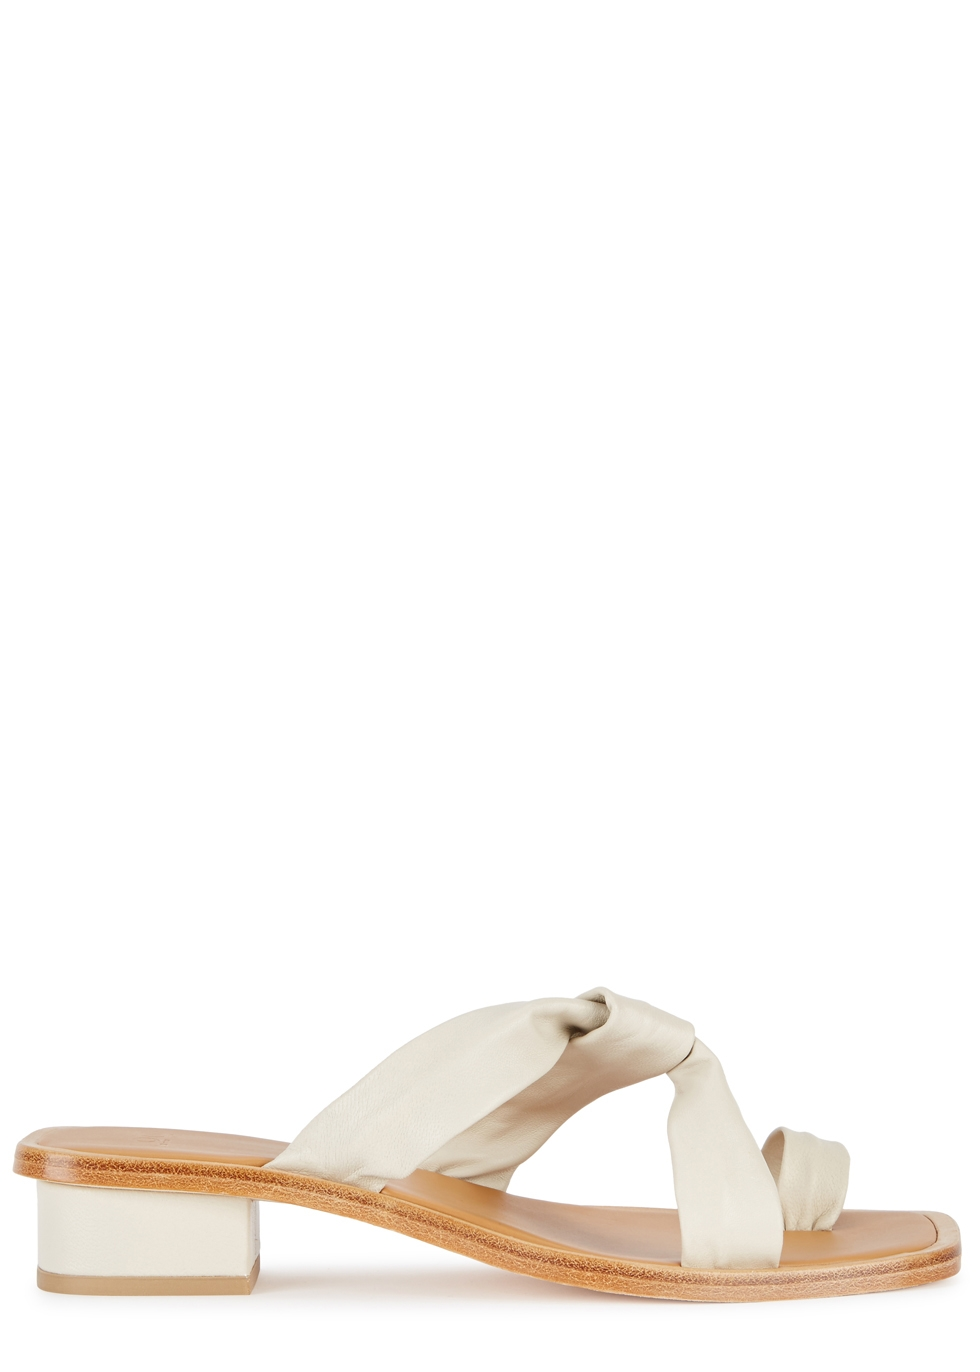 Pau Stone Leather Sandals in Light Grey